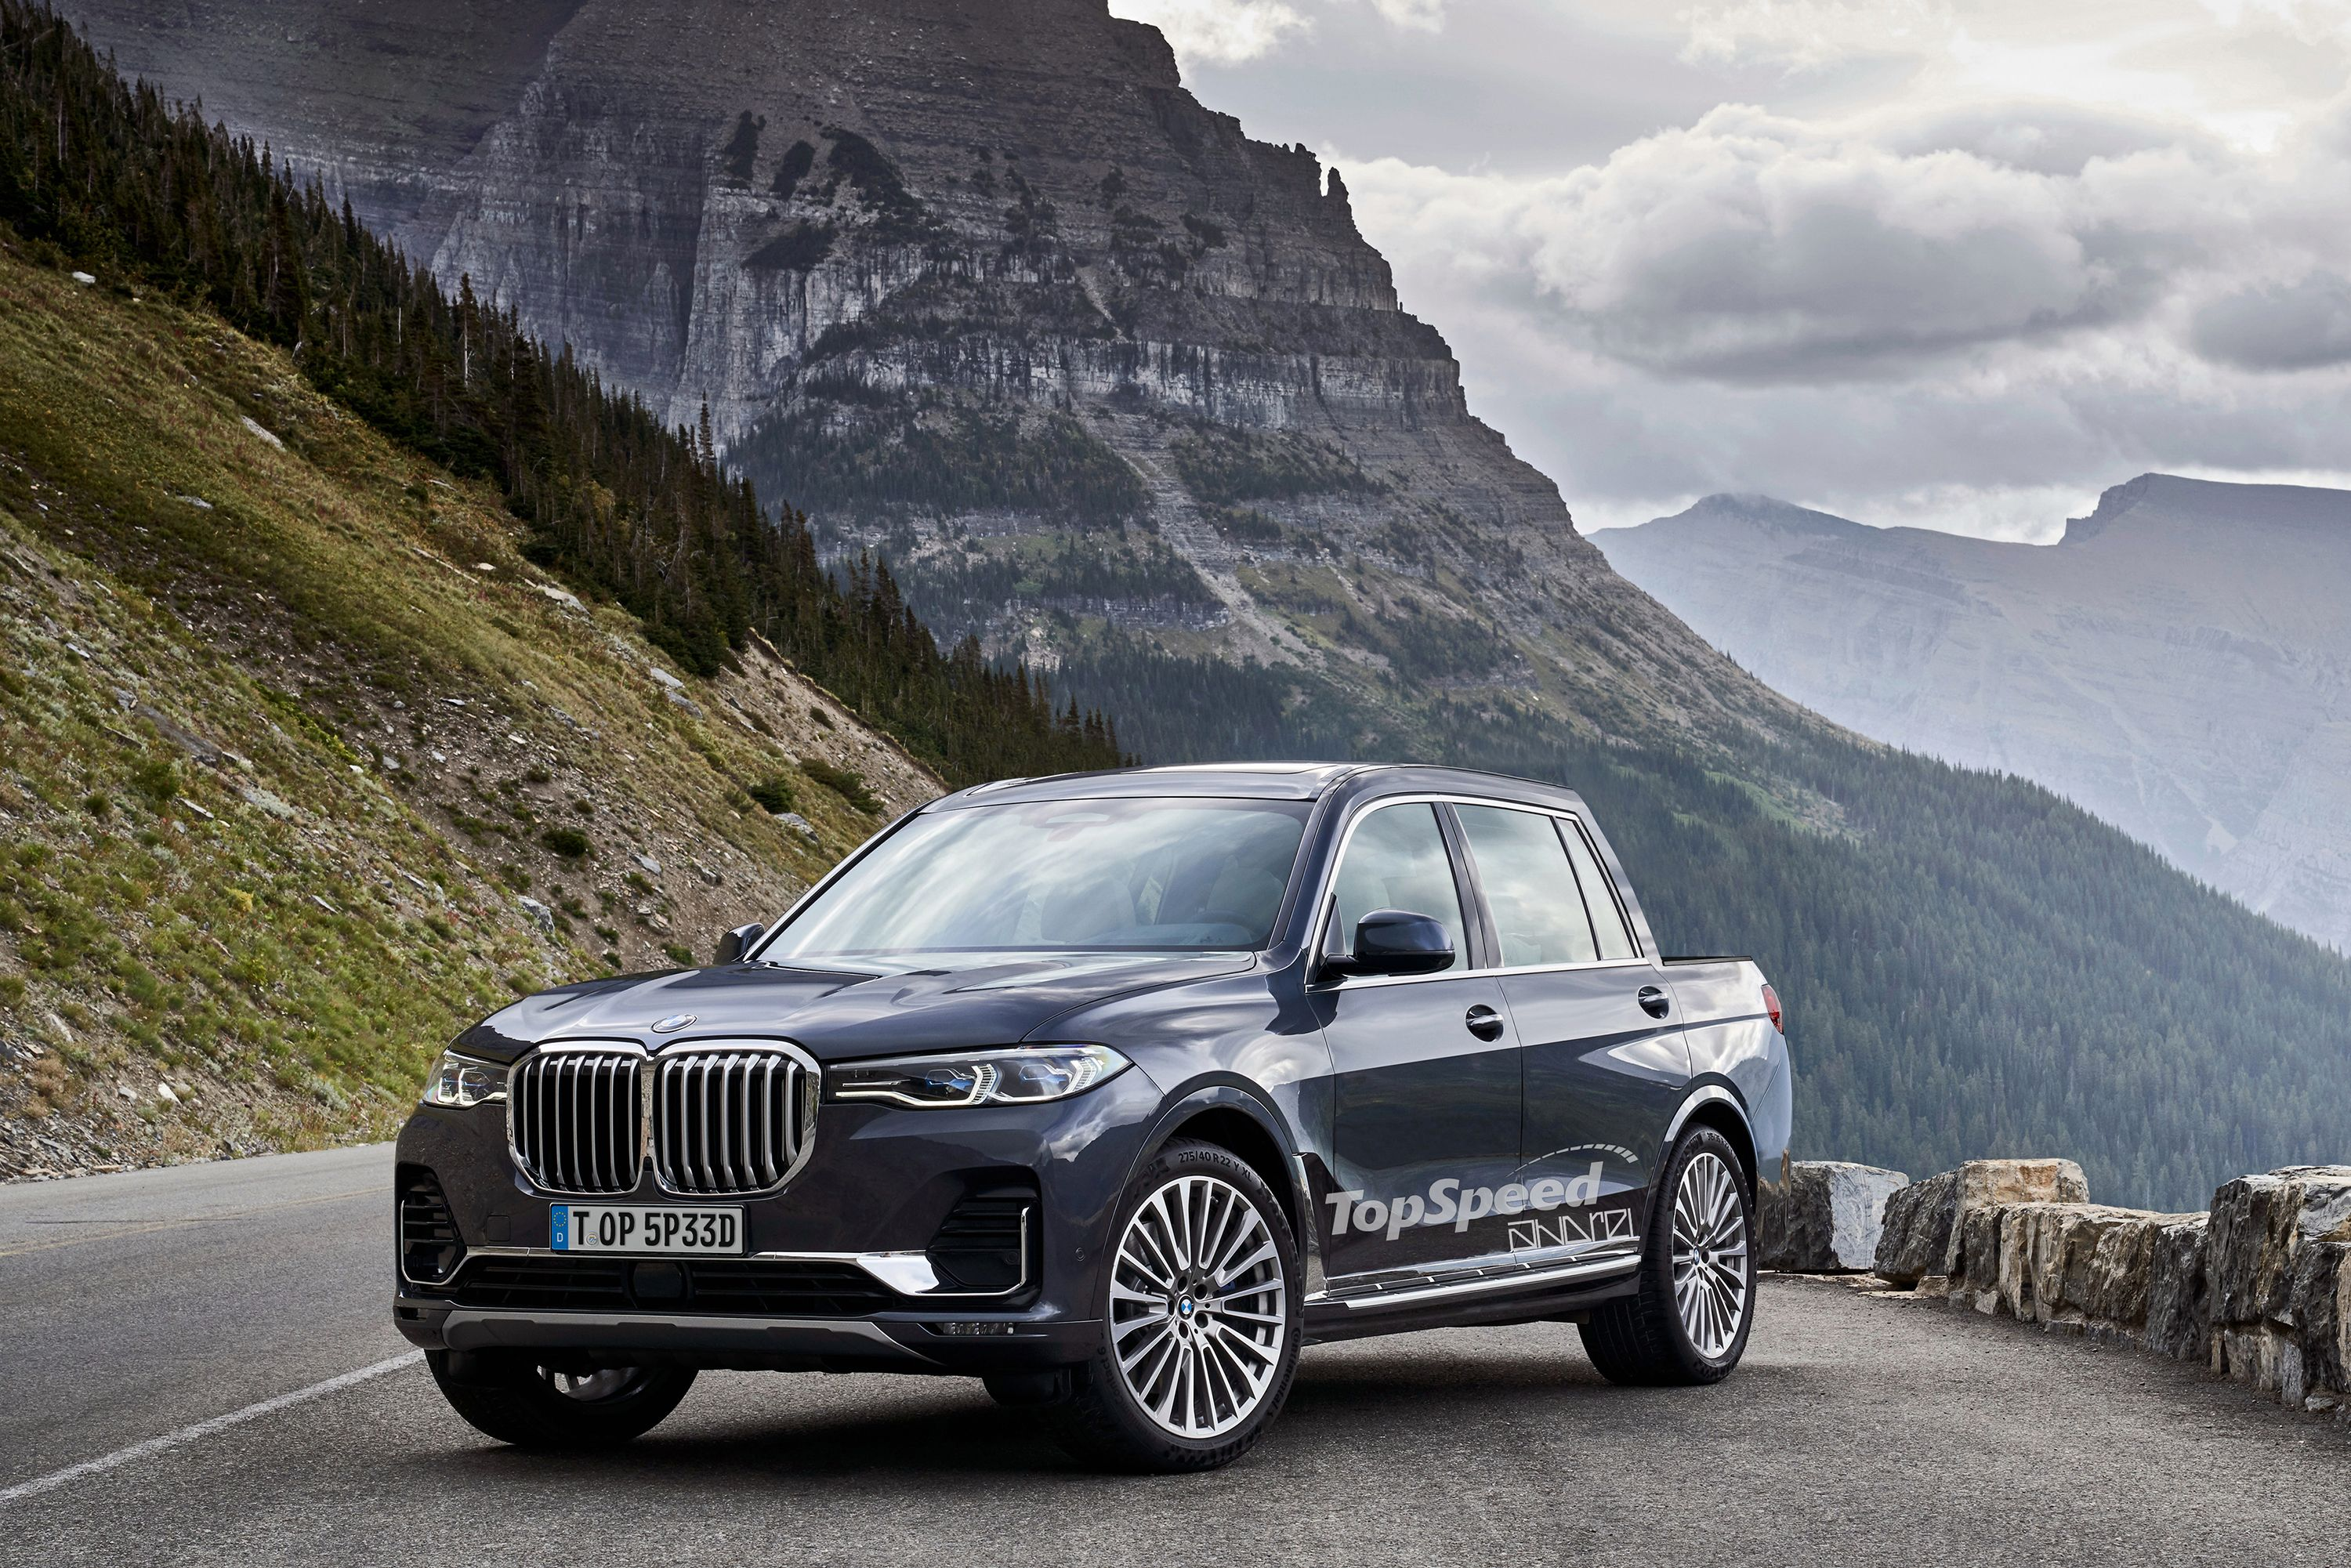 Bmw X7 Pickup Could Be Bmw S Answer To The Mercedes X Class Top Speed Bmw X7 Bmw X Models Bmw